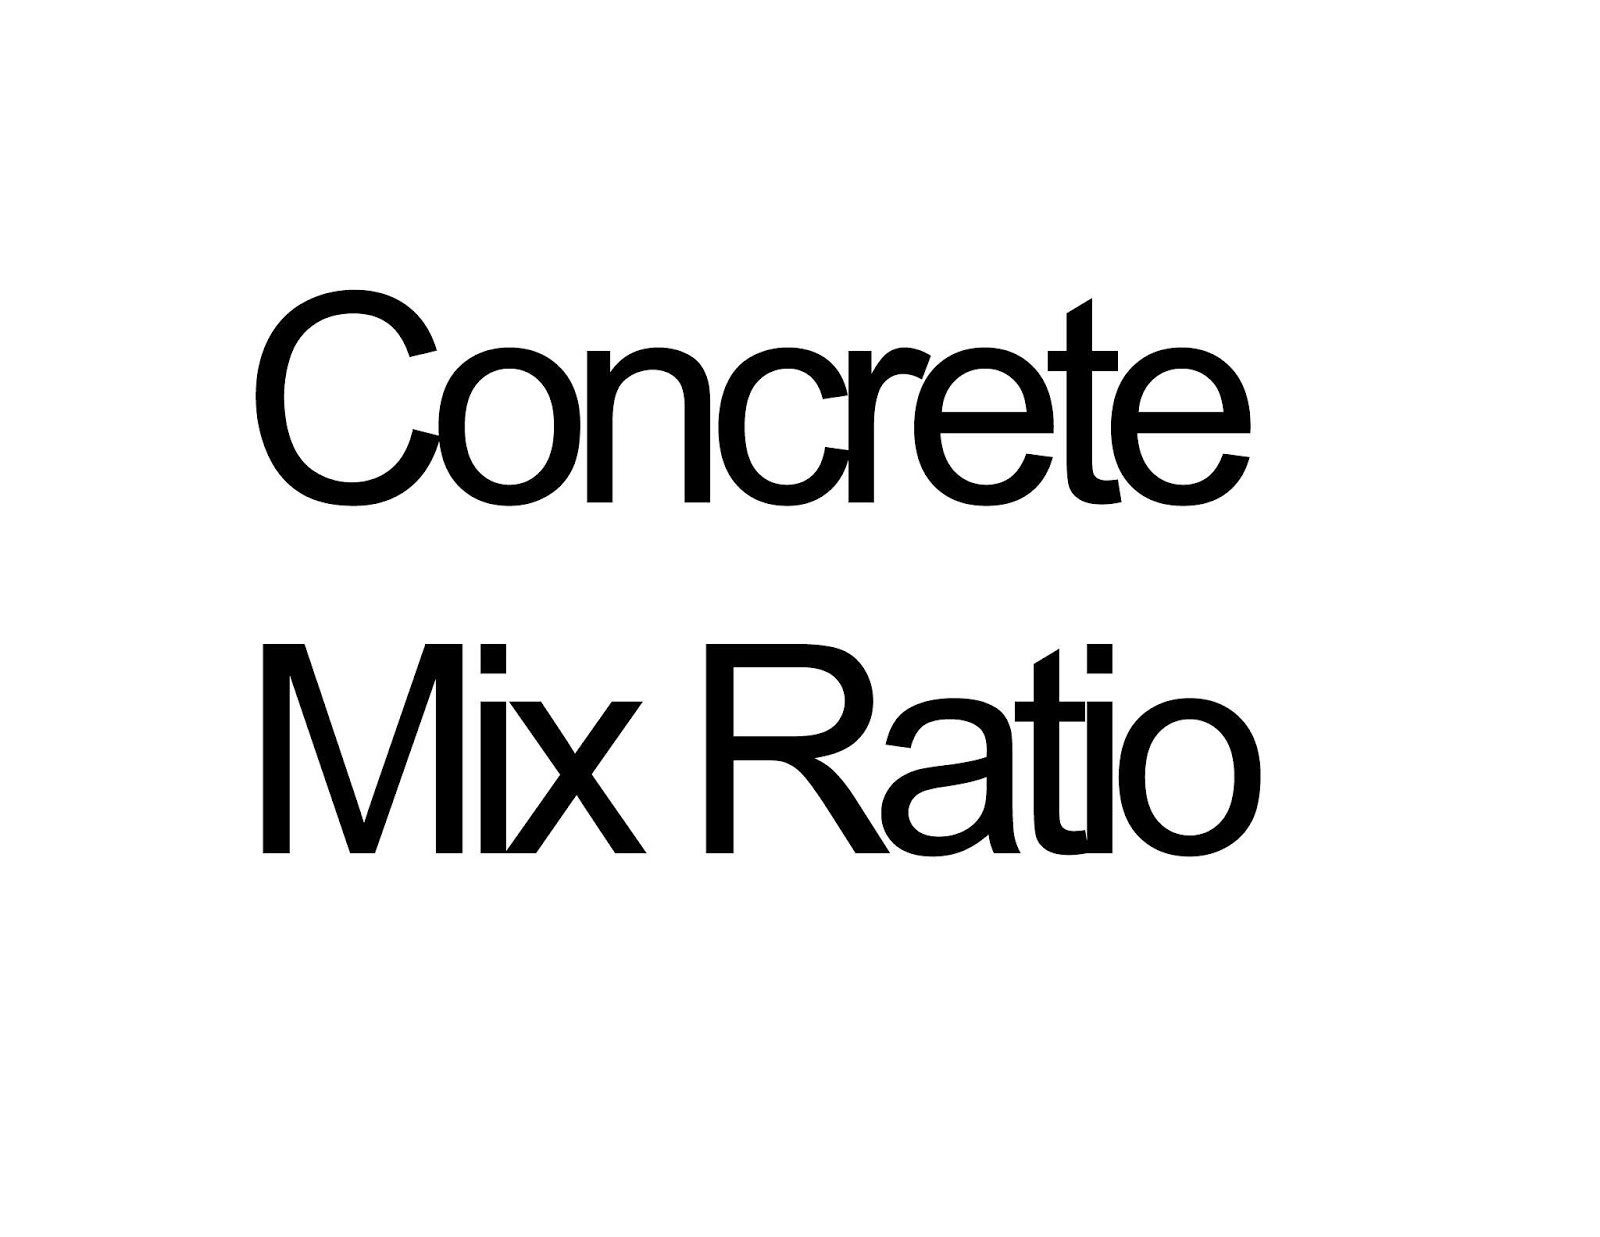 concrete mix ratio,askthebuilder,archicrew india,construction education,mixing concrete,concrete water ratio,handy man,housework,gardening,house spouse,tim carter,cement mixing,home building,plumbing tips,carpentry tips,building tips,remodeling tips,plaster,brickwork,derivation of d2/162,calculation formula,building science,barrow mixer,cube test,foundation concrete mix ratio,building,civil engineering interview question answer